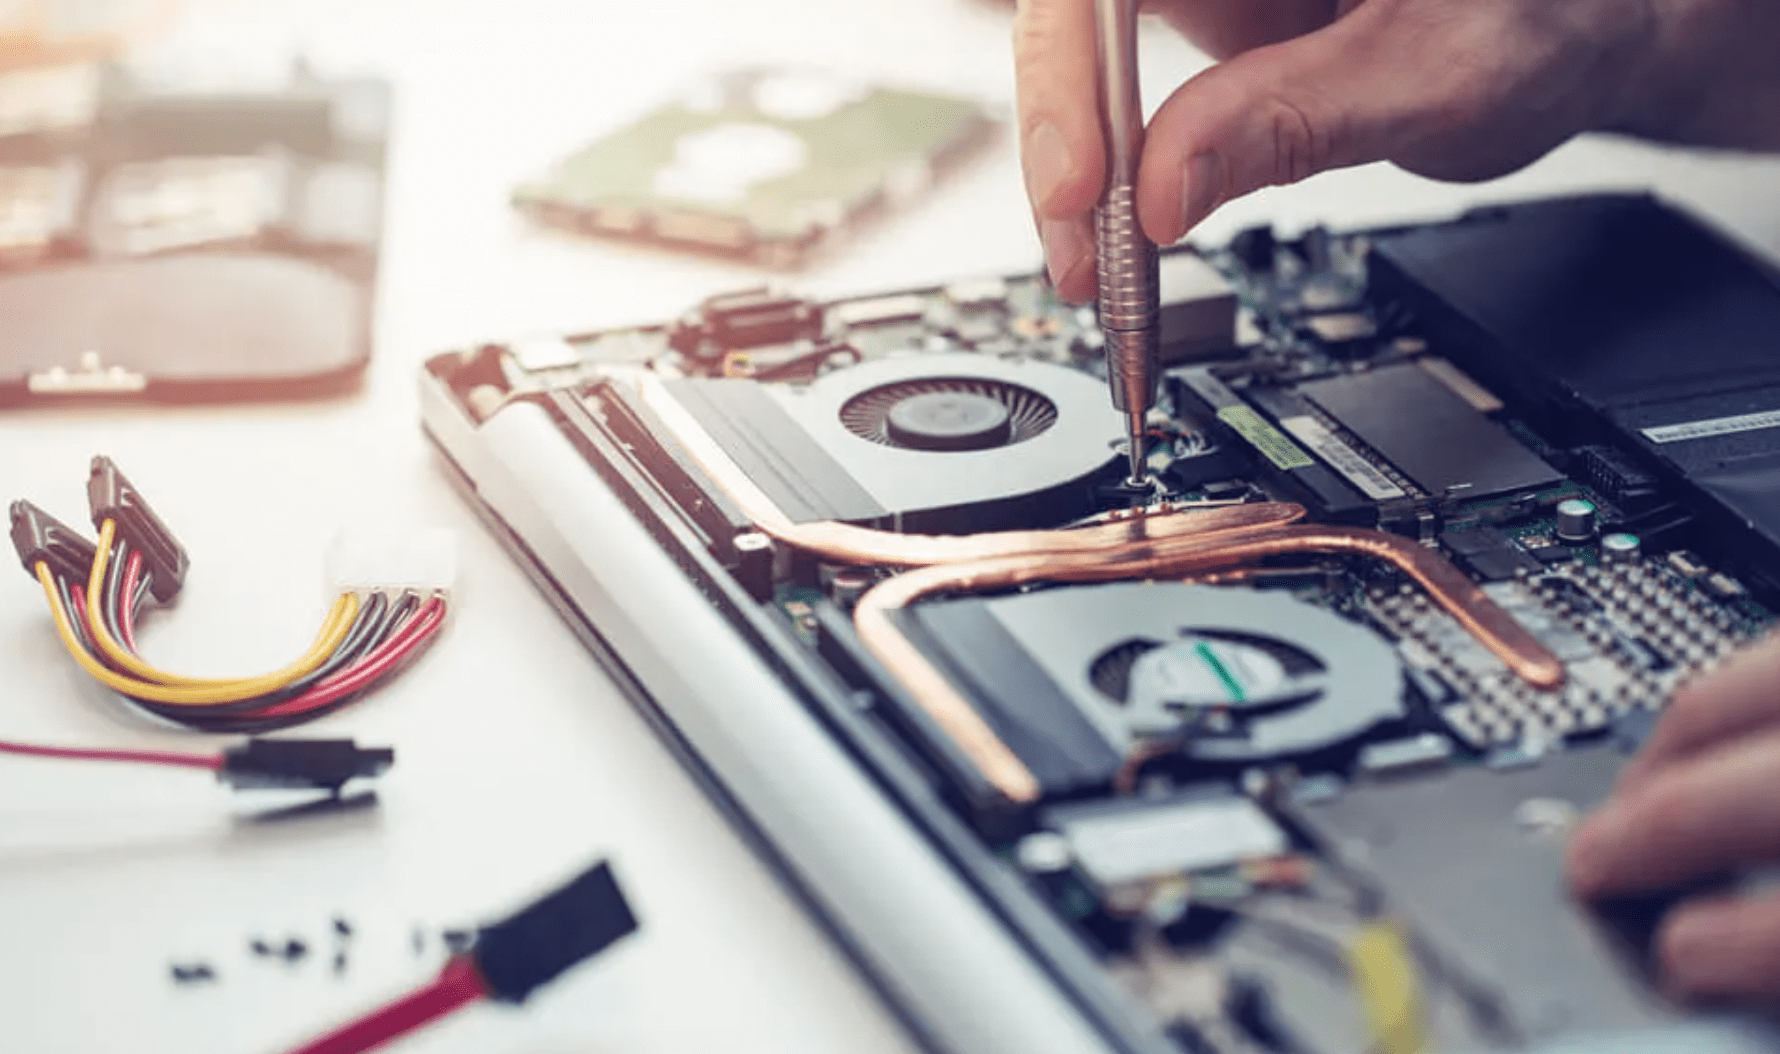 5 Common Problems With Laptops And Their Fixes